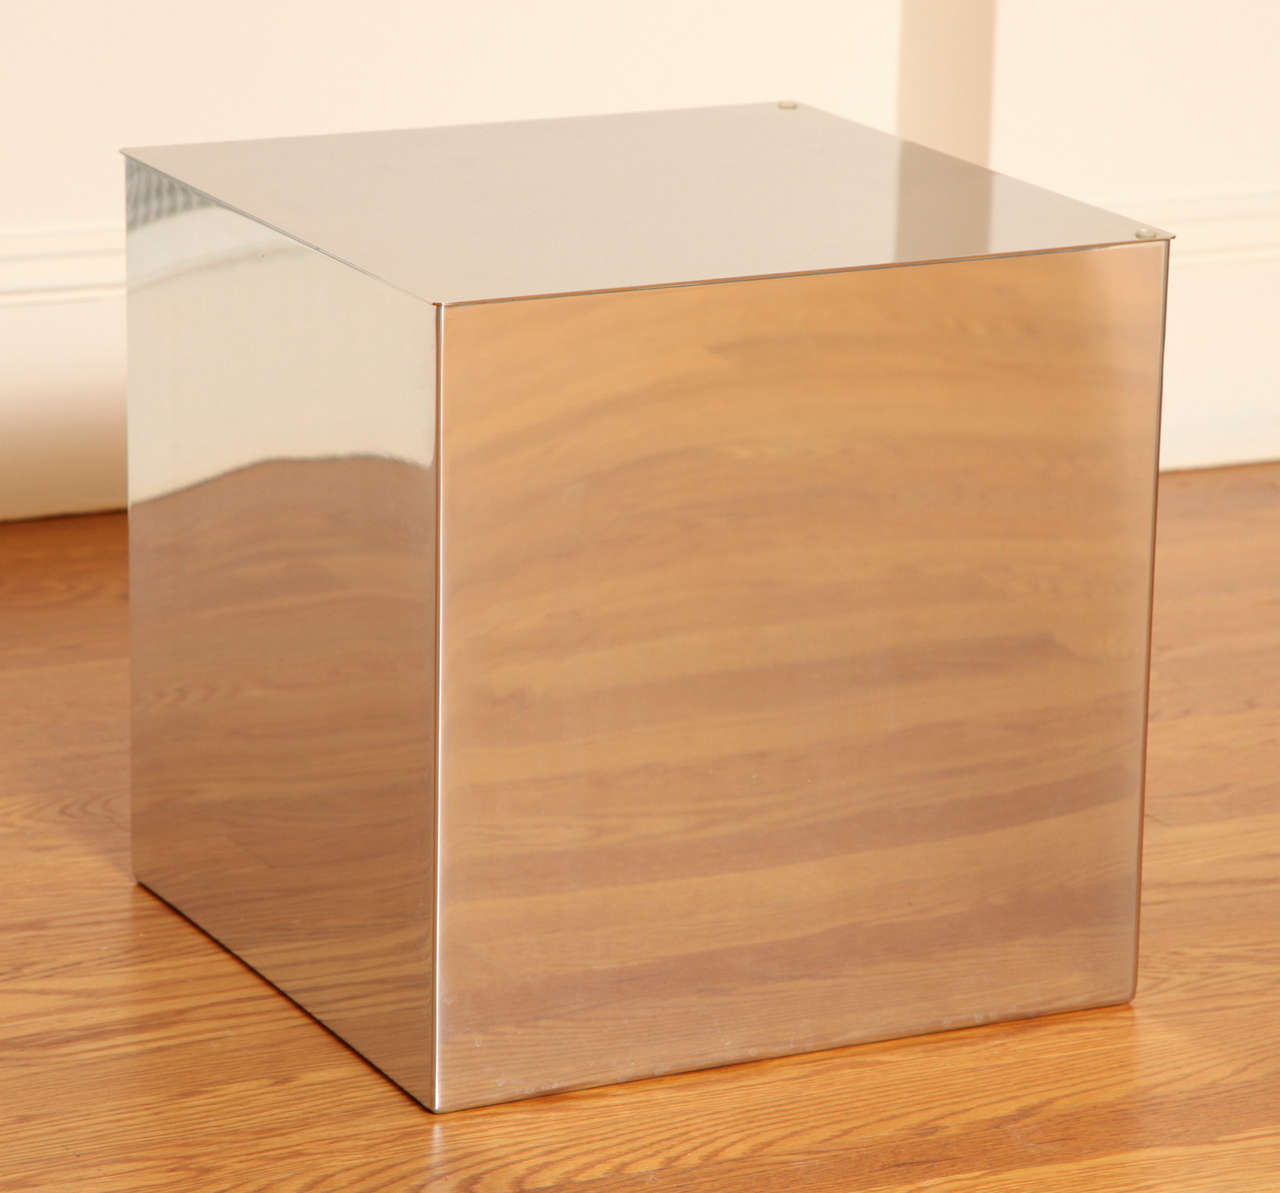 Pair Of Habitat Mirrored Cube Tables 2